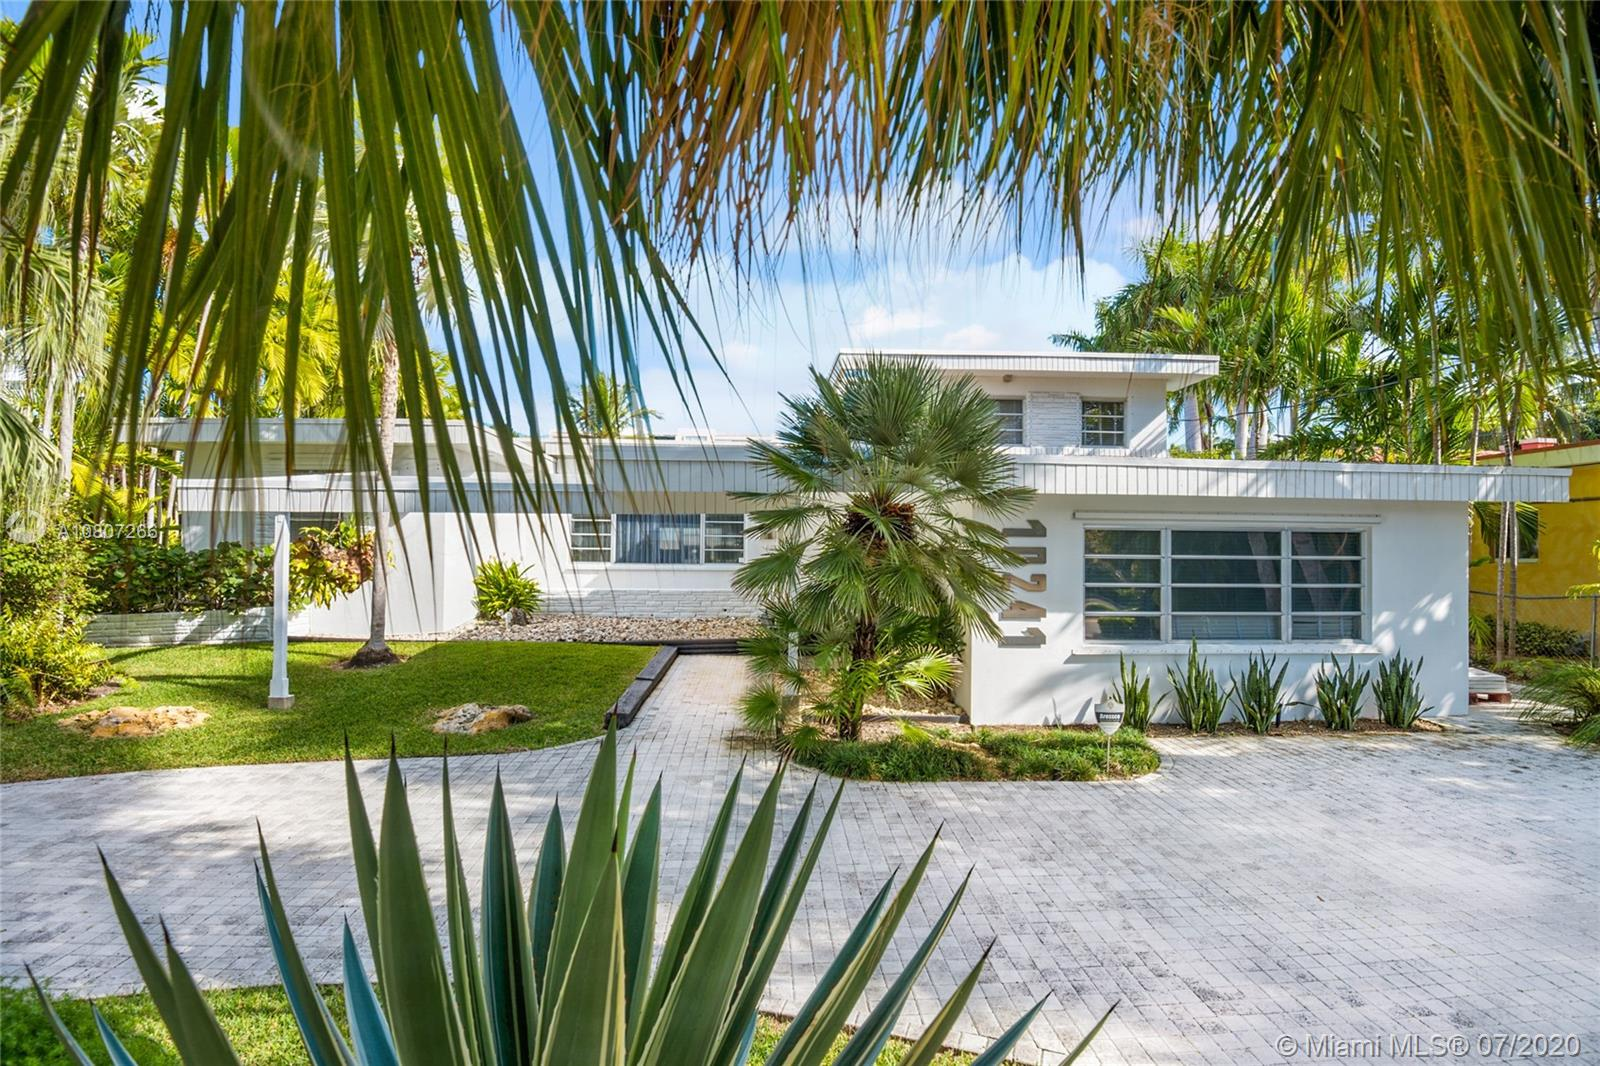 Bay Harbor Islands MiMo waterfront home w/ 1950's style & allure. Situated on the far north side of the island, this iconic residence is 3 lots from the open waters of Biscayne Bay- offering direct ocean access, within minutes. Upon entering the house, you will find seamless terrazzo floors (in mint condition), original architectural features & amazing distribution of space w/ an open floor plan. 5 bed/4 full baths + nanny's rm. The seawall/cap/dock (75' on the water) were completed in 2015 w/ refinished pool/lounge area. Impeccably designed kitchen redone in 2015 w/ all Viking gas appliances. Separate master bdrm, offering privacy & views of the water. Waterfront living at it's best! A-rated schools, walk to beach, Bal Harbour Shops, & houses of worship. Over 3700 sq ft as per owner.